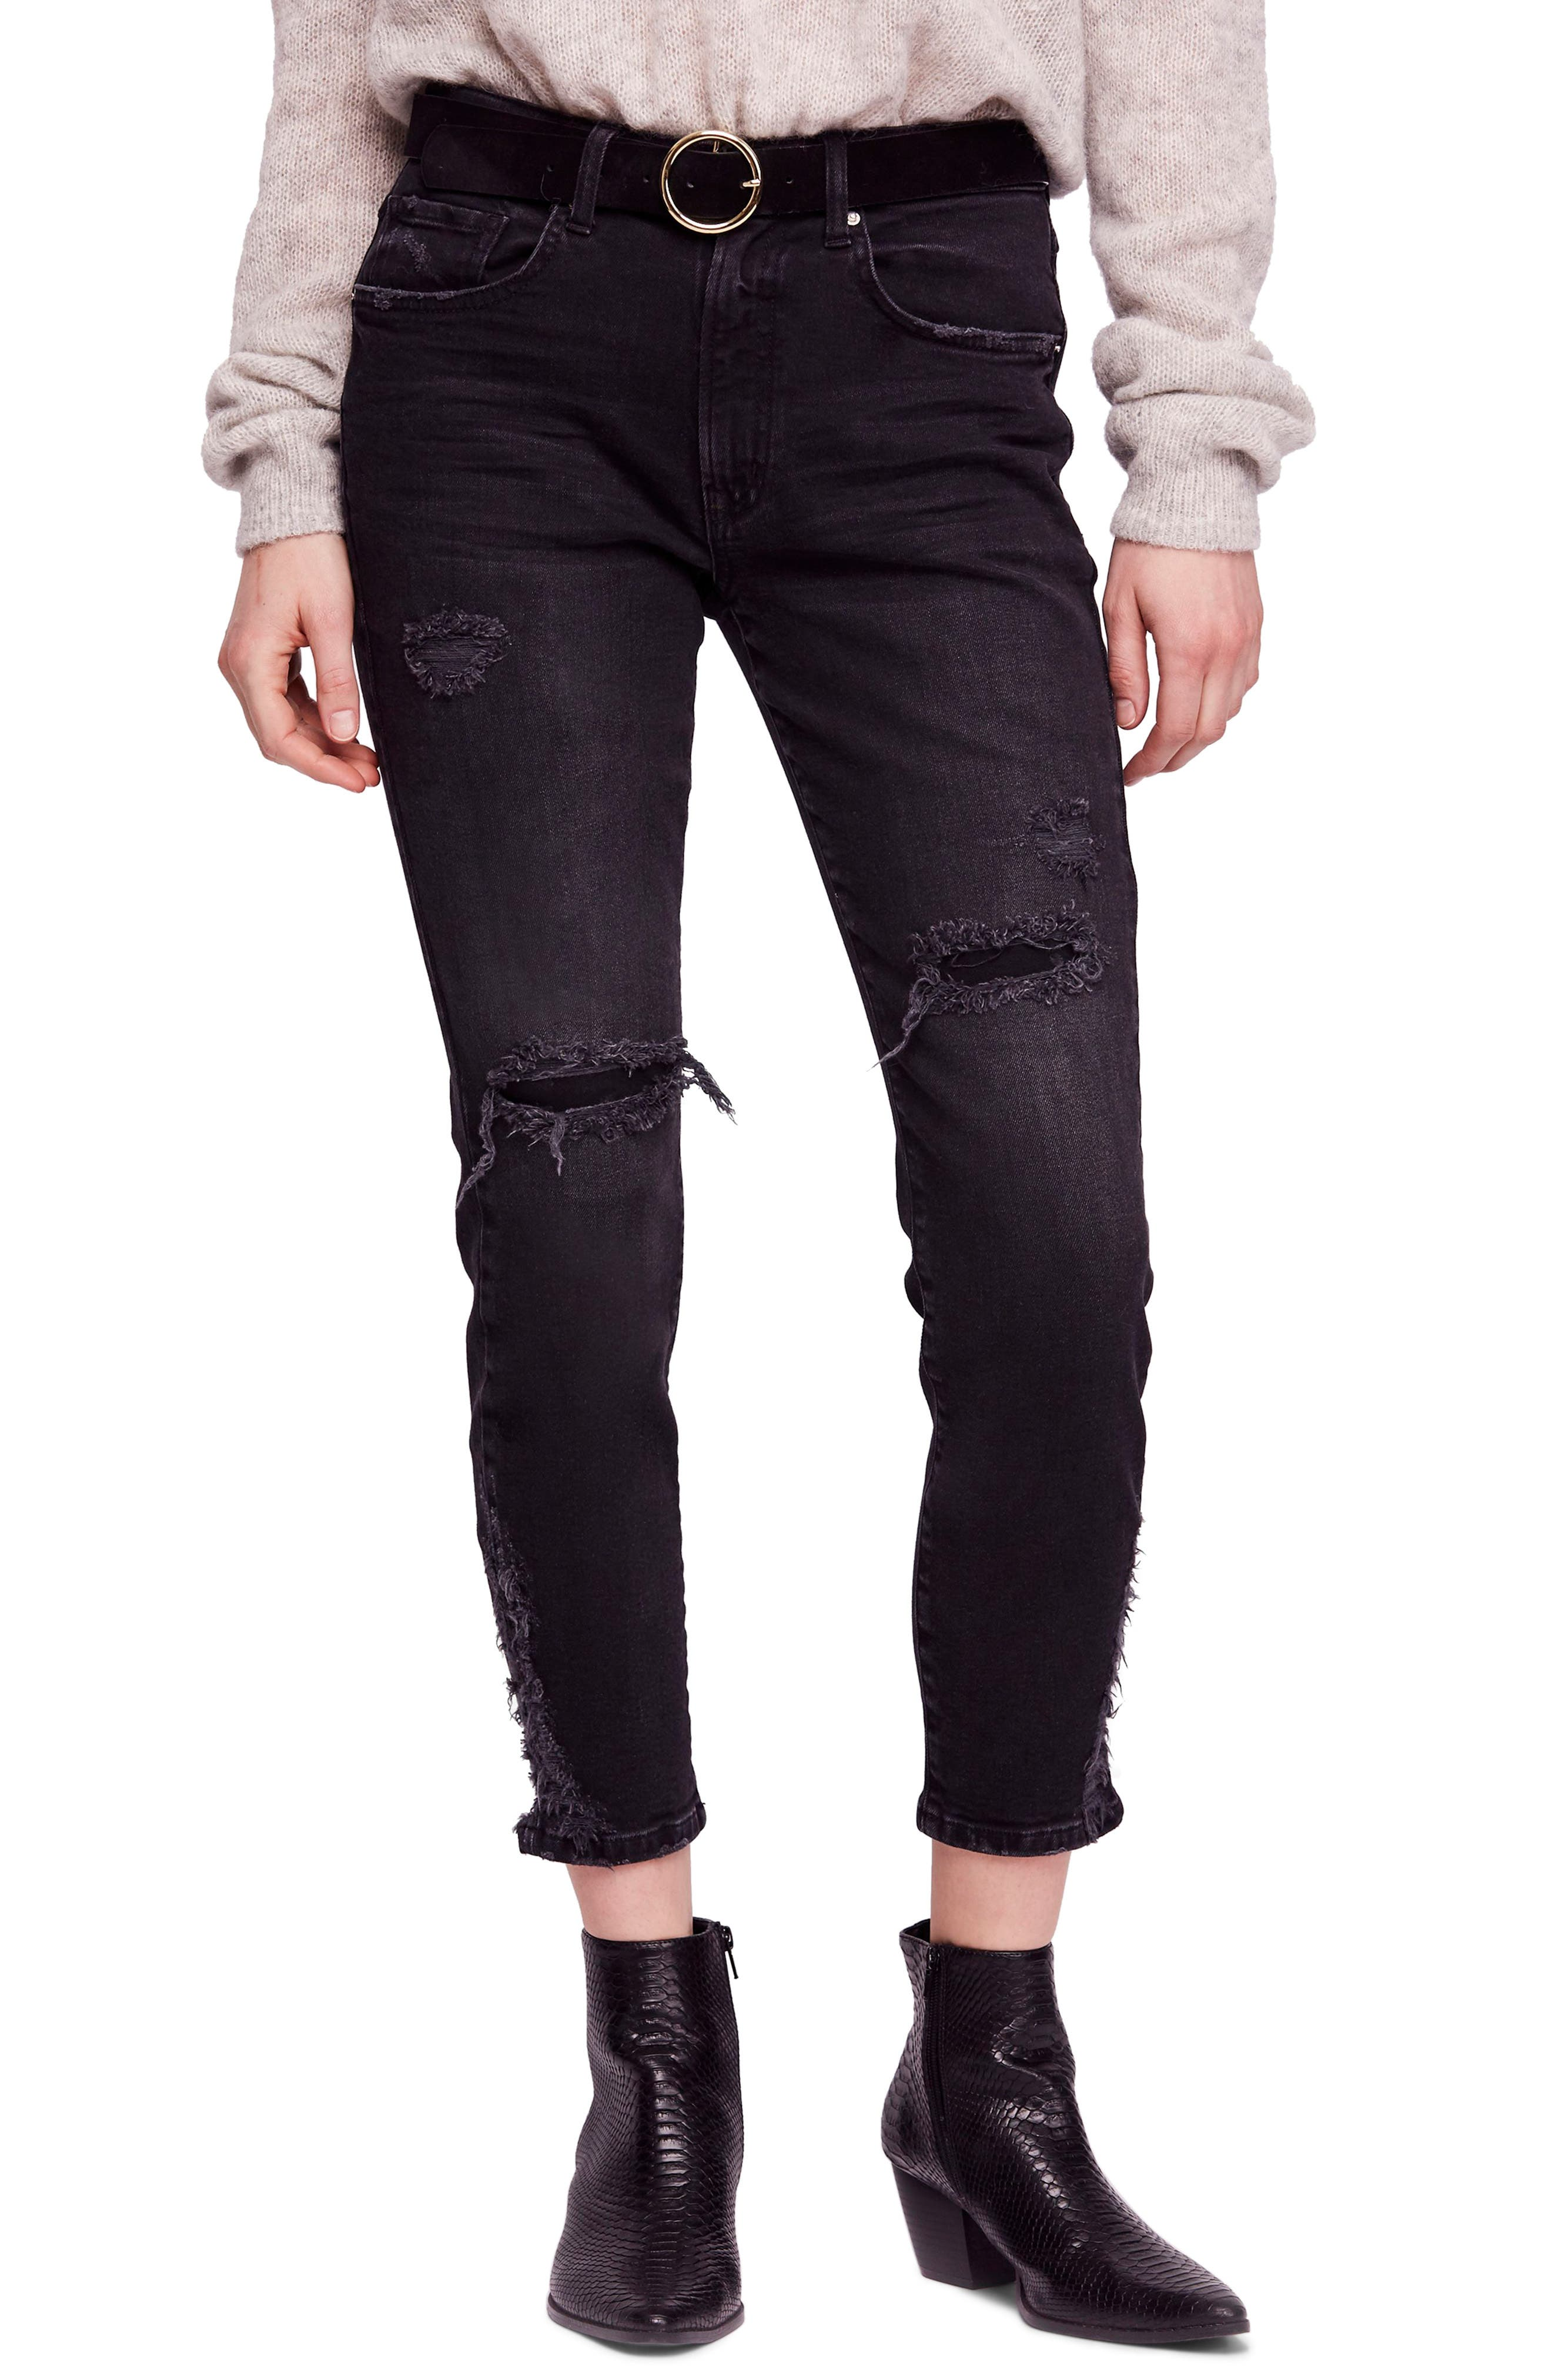 About a Girl Ripped High Waist Crop Skinny Jeans,                         Main,                         color, BLACK